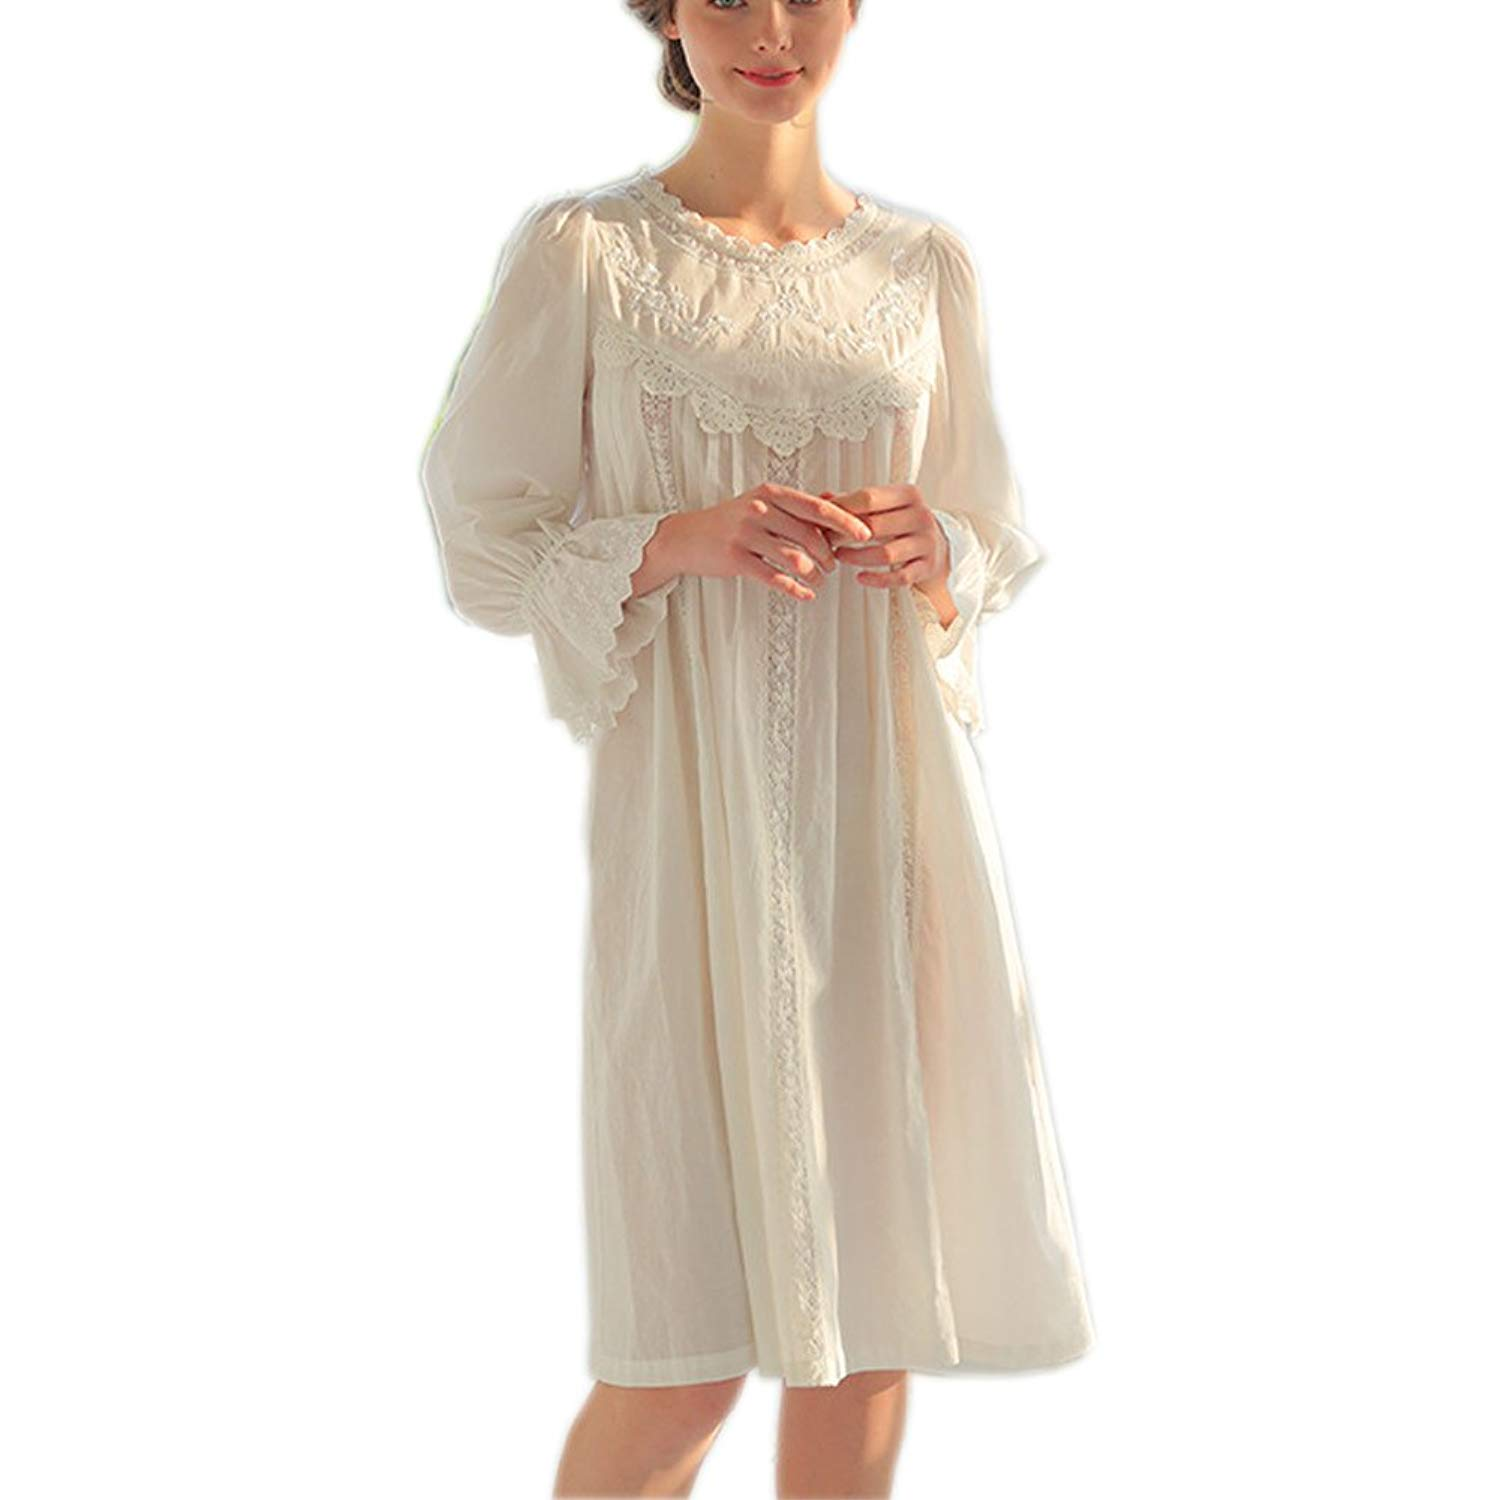 d0fbe81319 Get Quotations · Singingqueen Womens  White Cotton Embroidery Vintage  Nightgown Victorian Sleepwear Nightdress Pajamas Loungewear